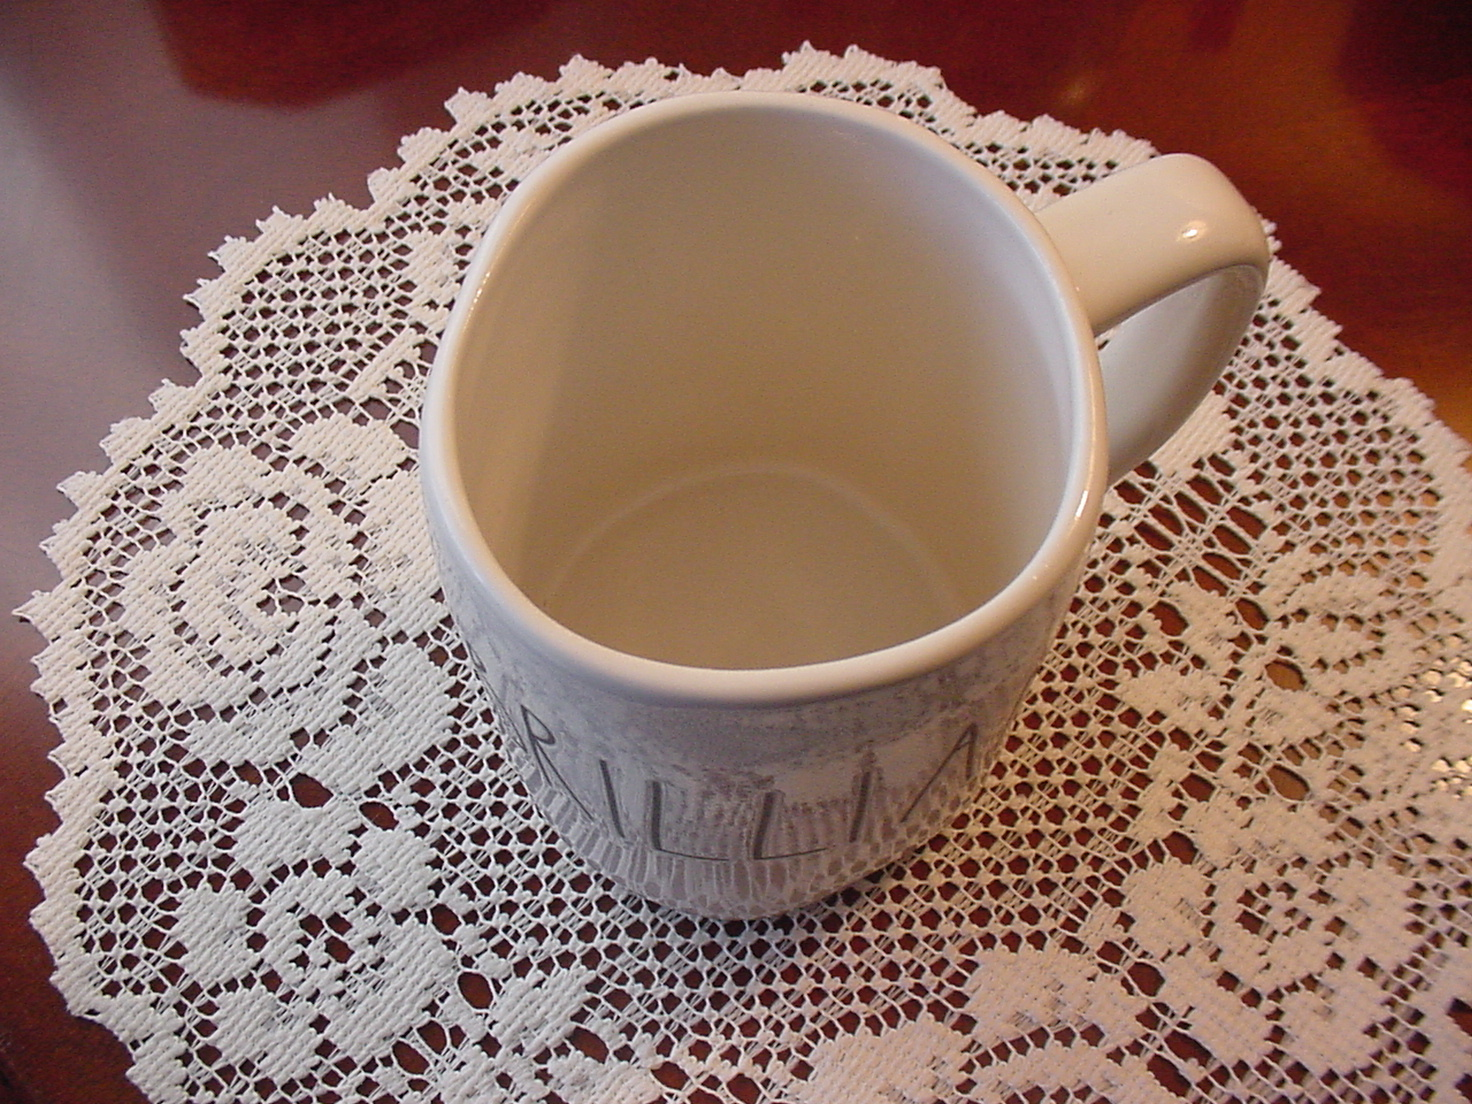 Rae Dunn BRILLIANT Rustic Mug, Ivory with Black Letters, New!